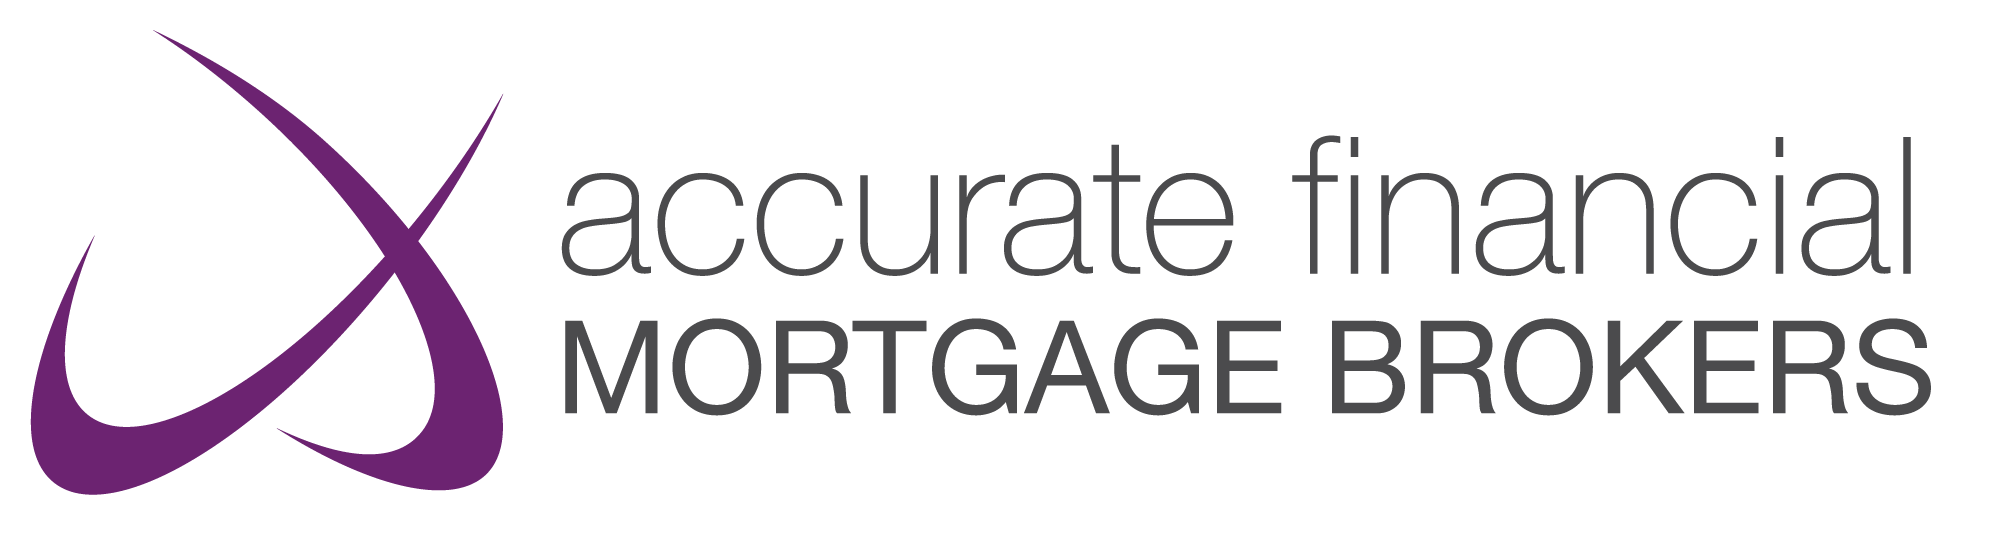 Accurate Financial Mortgage Brokers